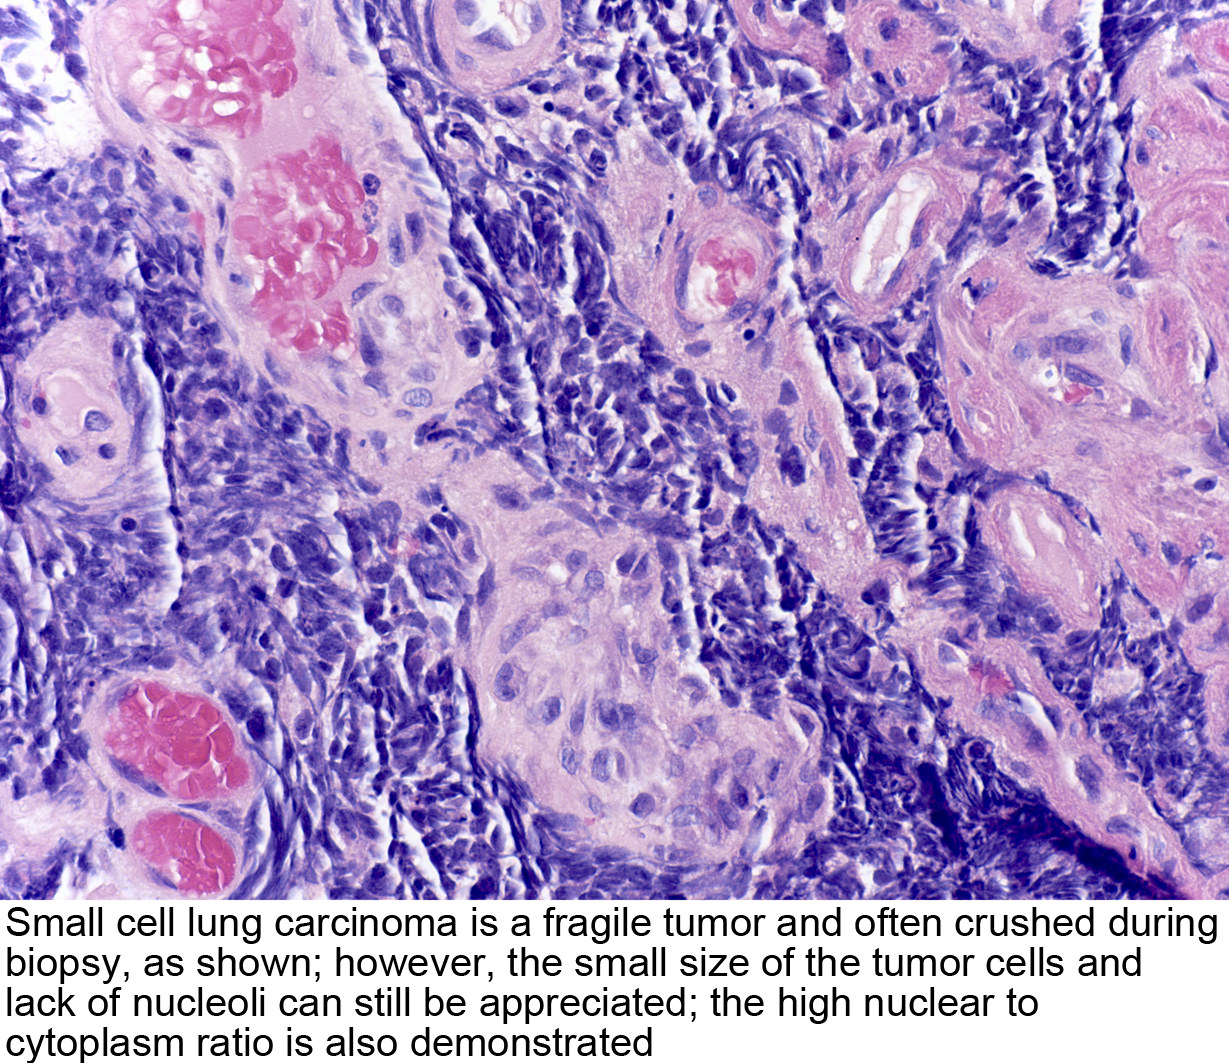 Pathology Outlines - Small cell carcinoma